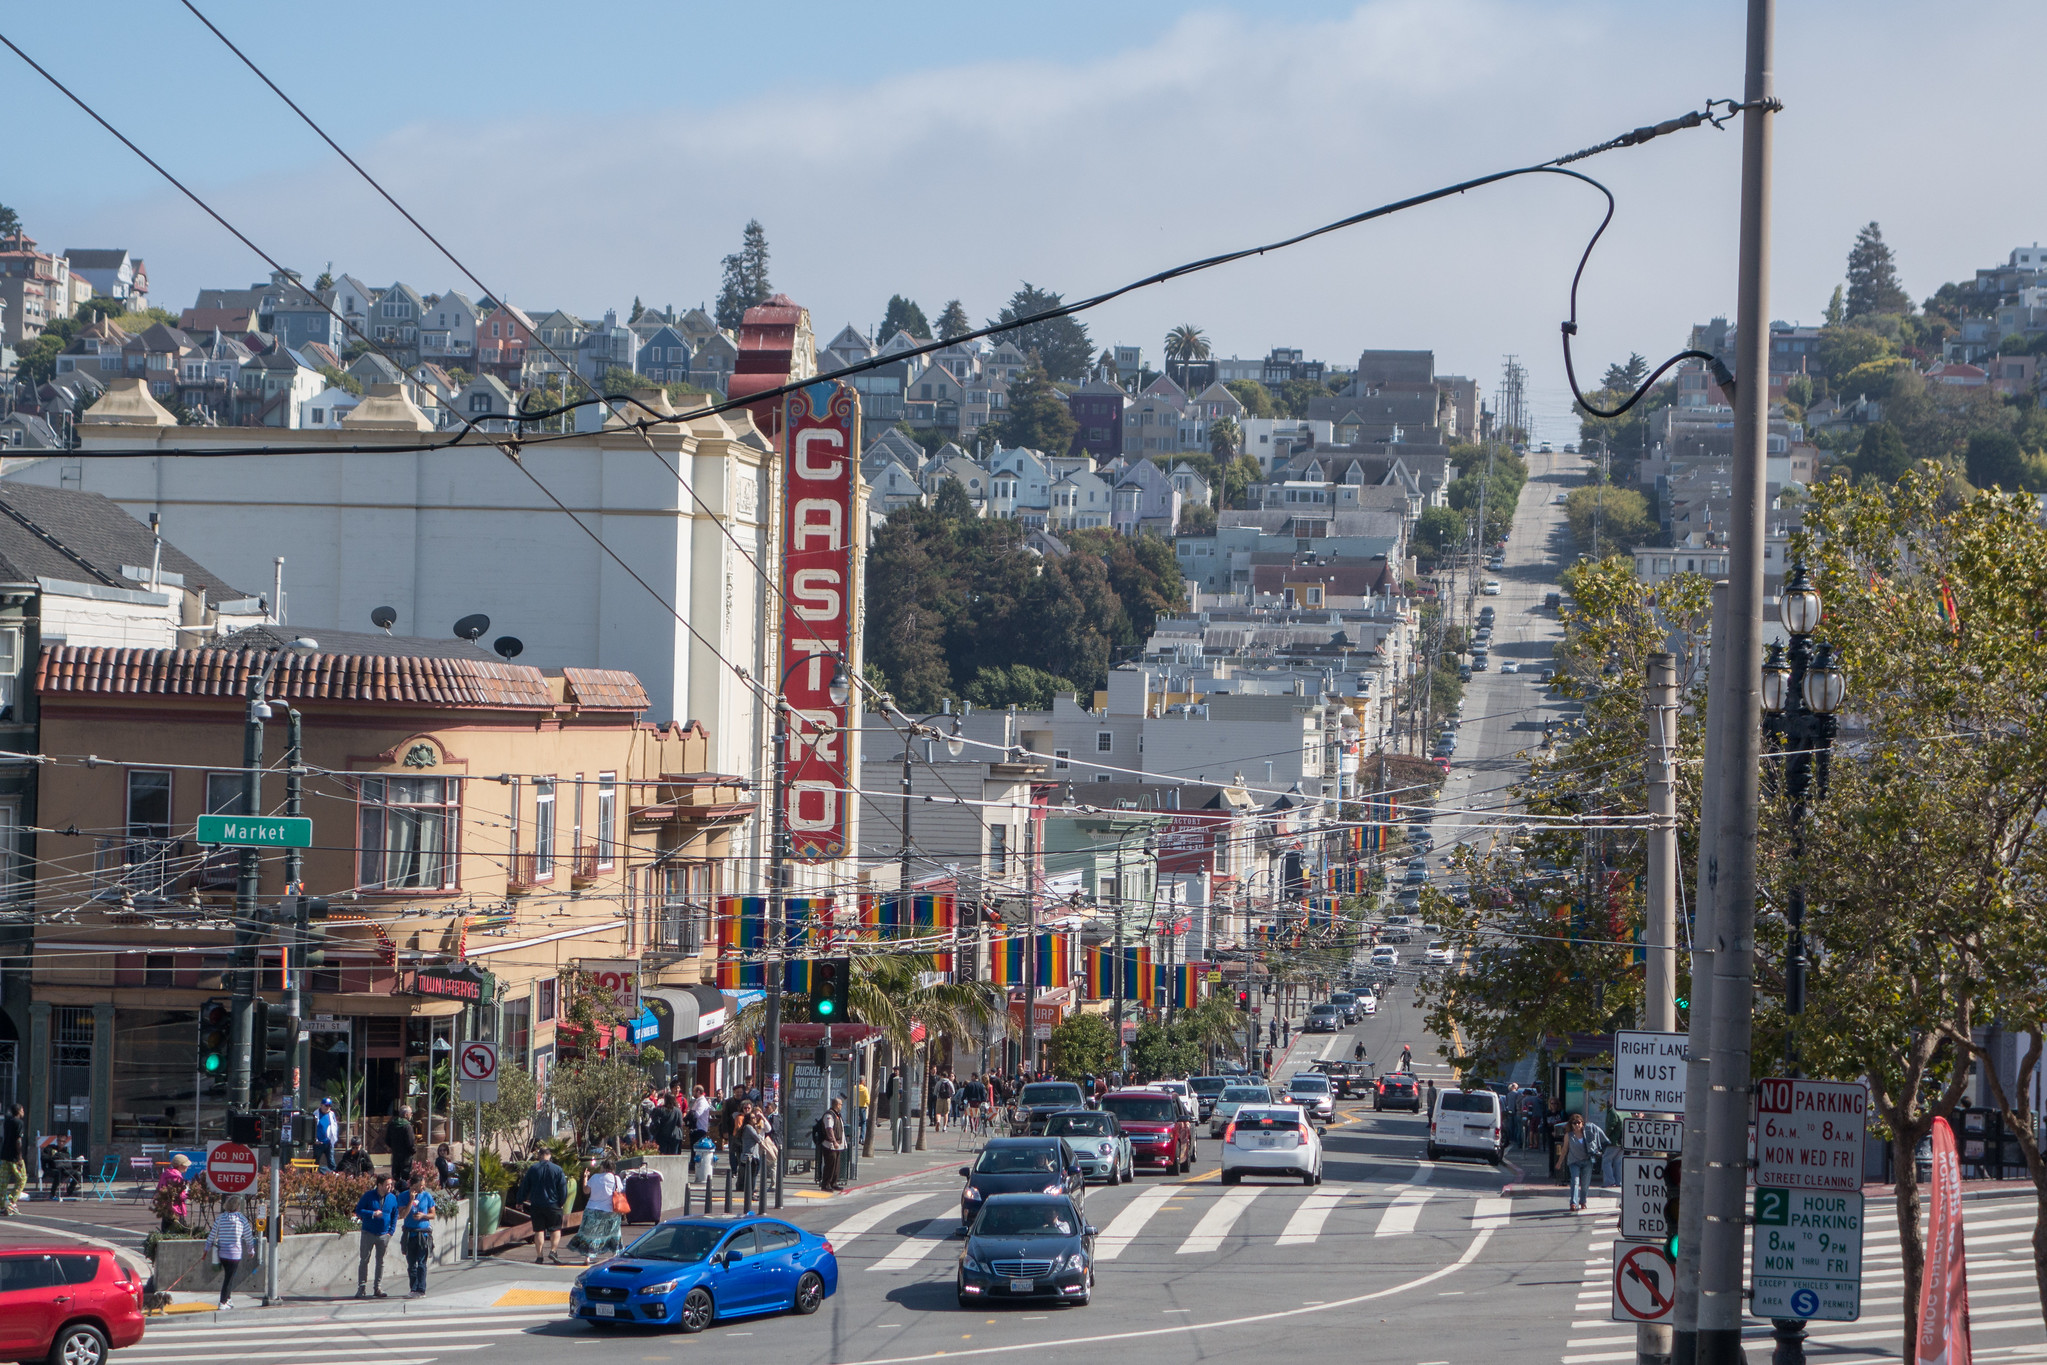 An image of Castro Street in San Francisco